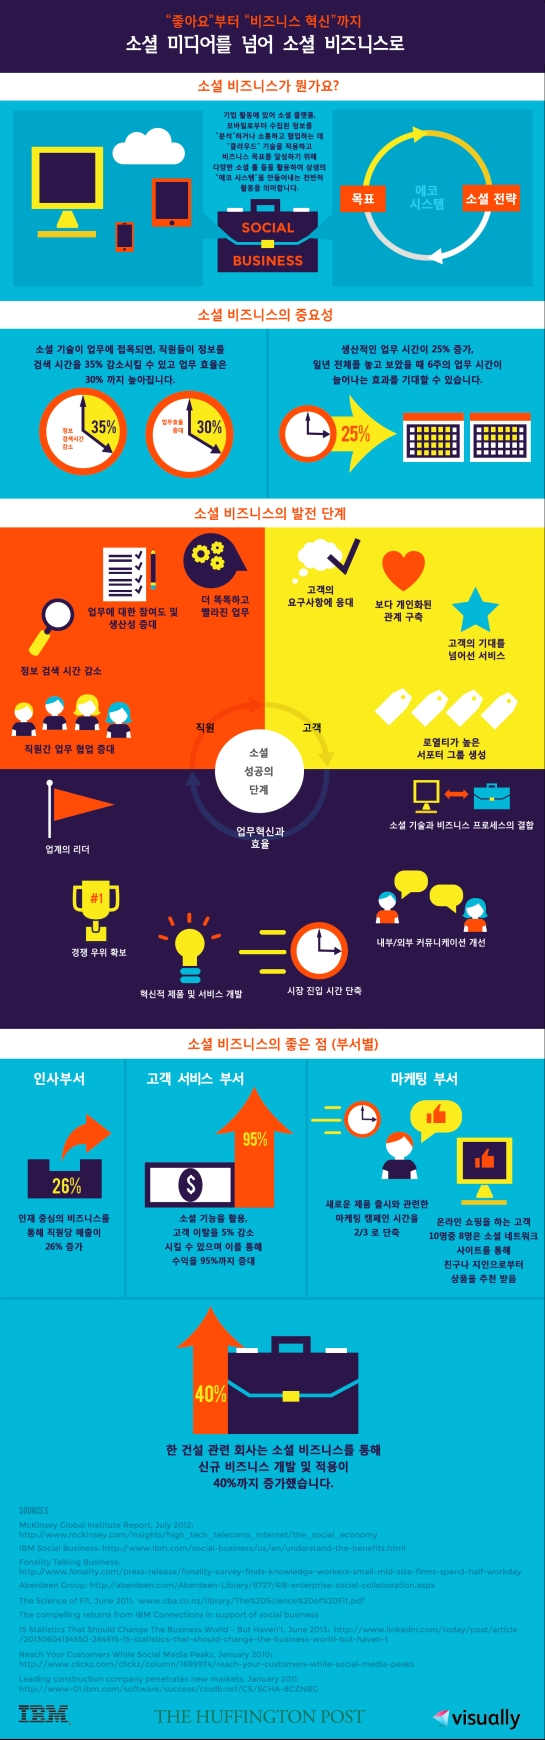 Beyond Social to Social Business-한글